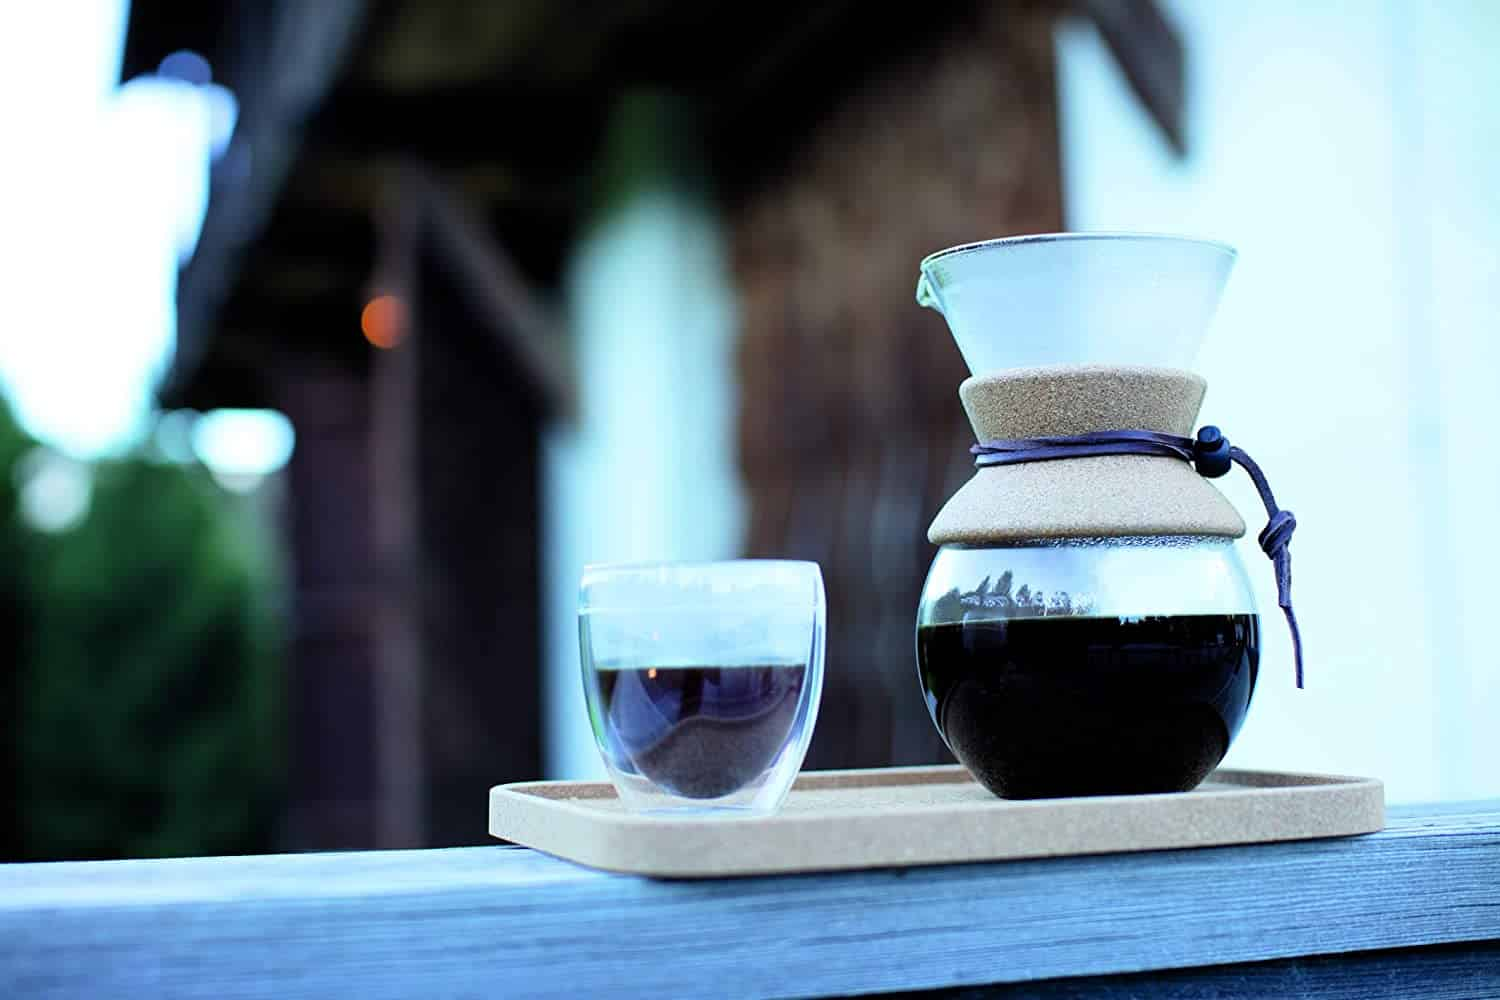 Pour Over Coffee Maker from Bodum